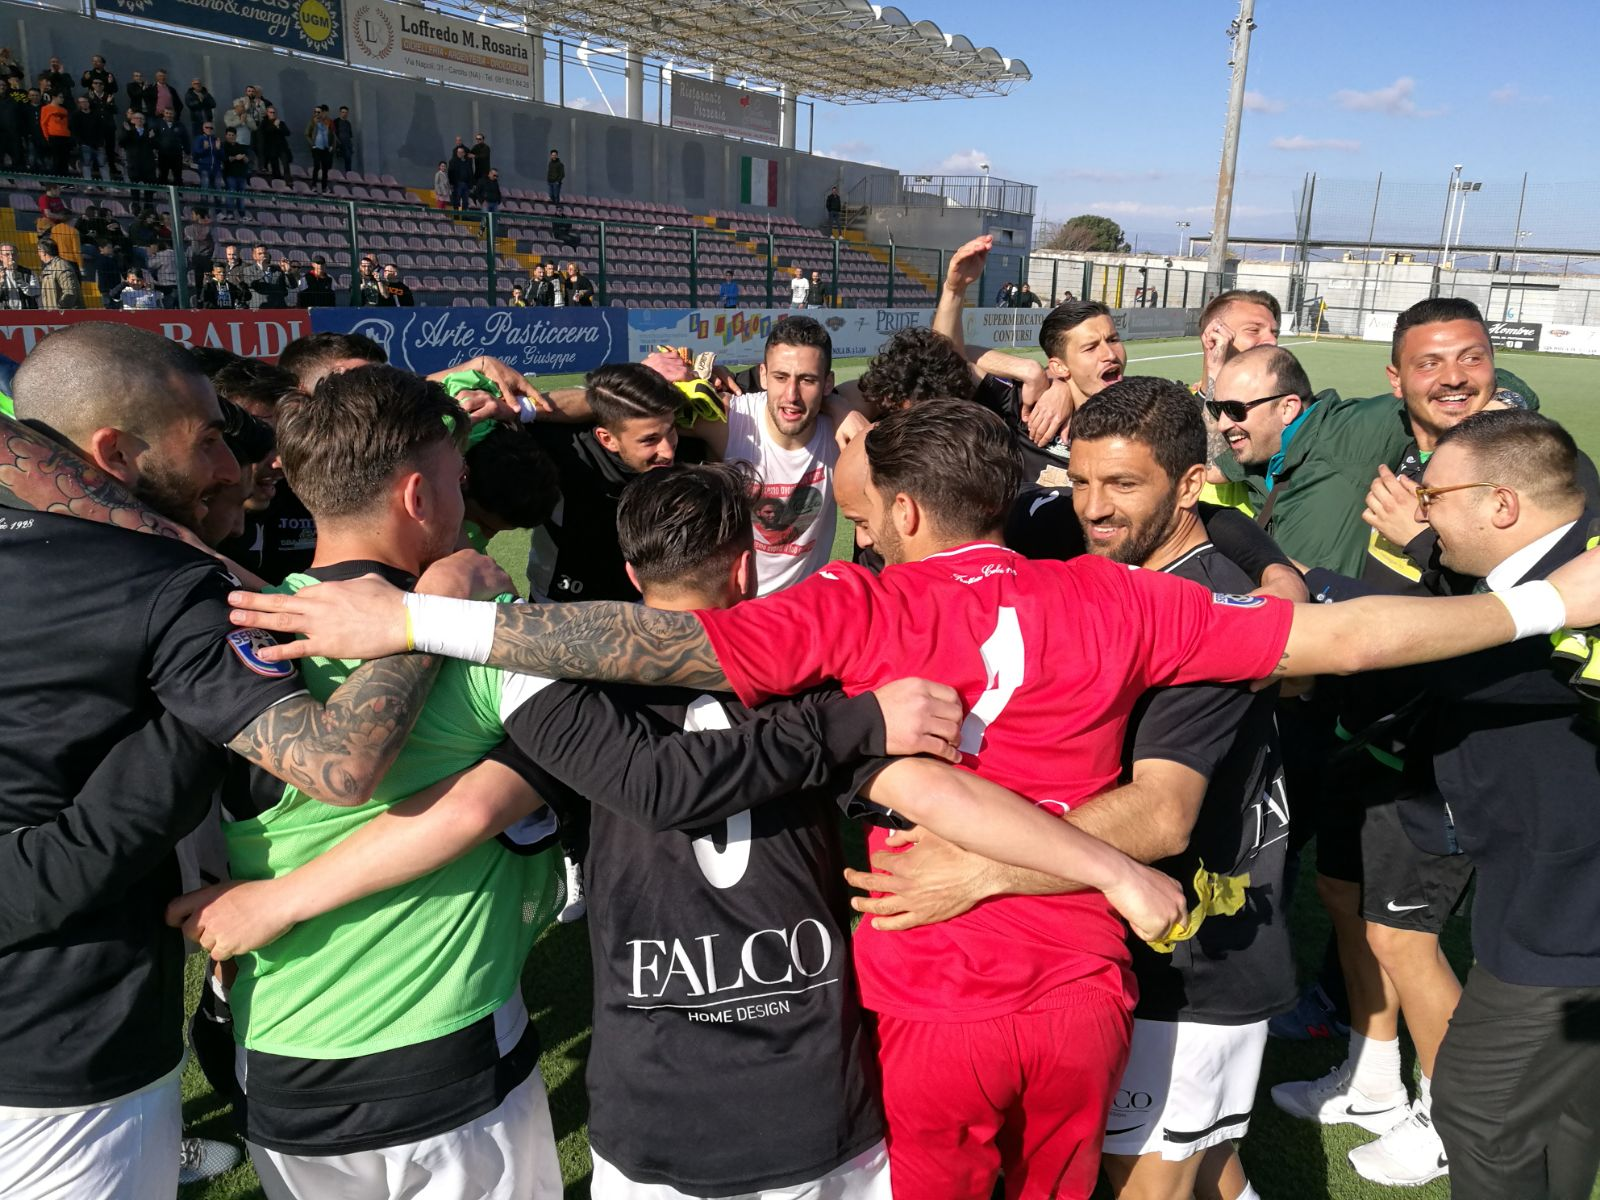 Riscatto Frattese: Cavese out, chiude il match in 8 uomini